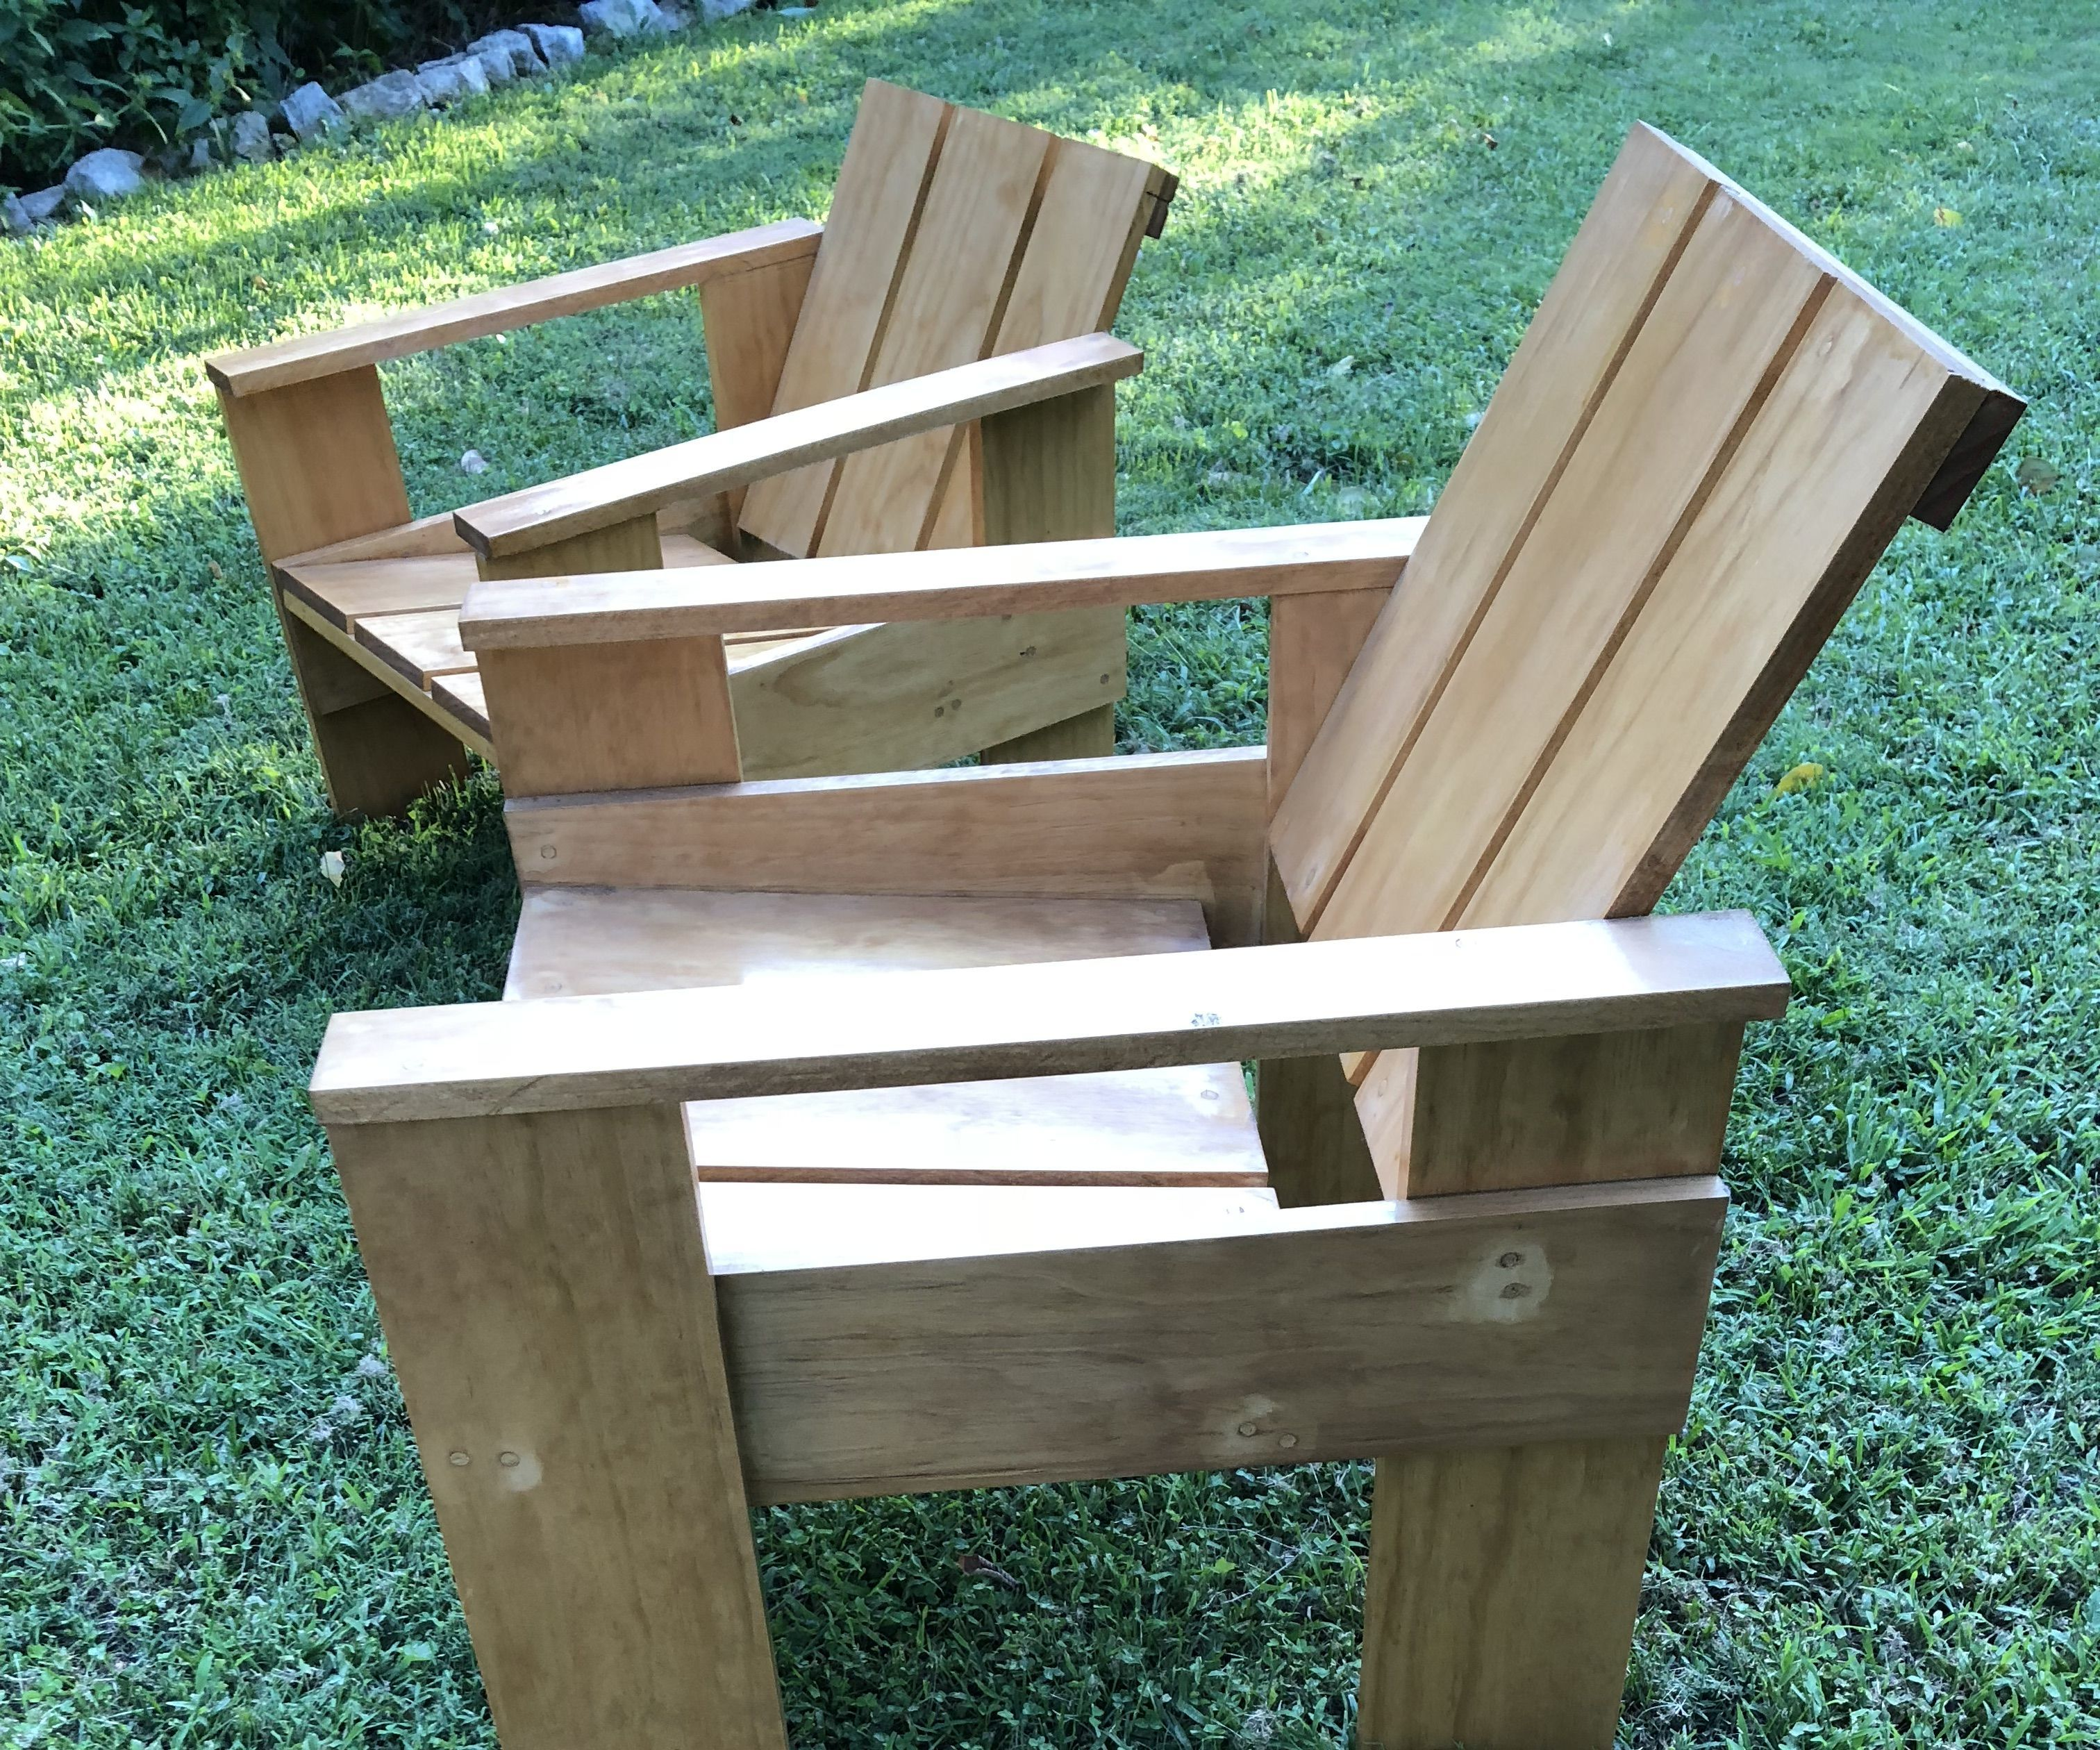 Groovy Gerrit Rietveld Crate Chair 5 Steps With Pictures Download Free Architecture Designs Scobabritishbridgeorg